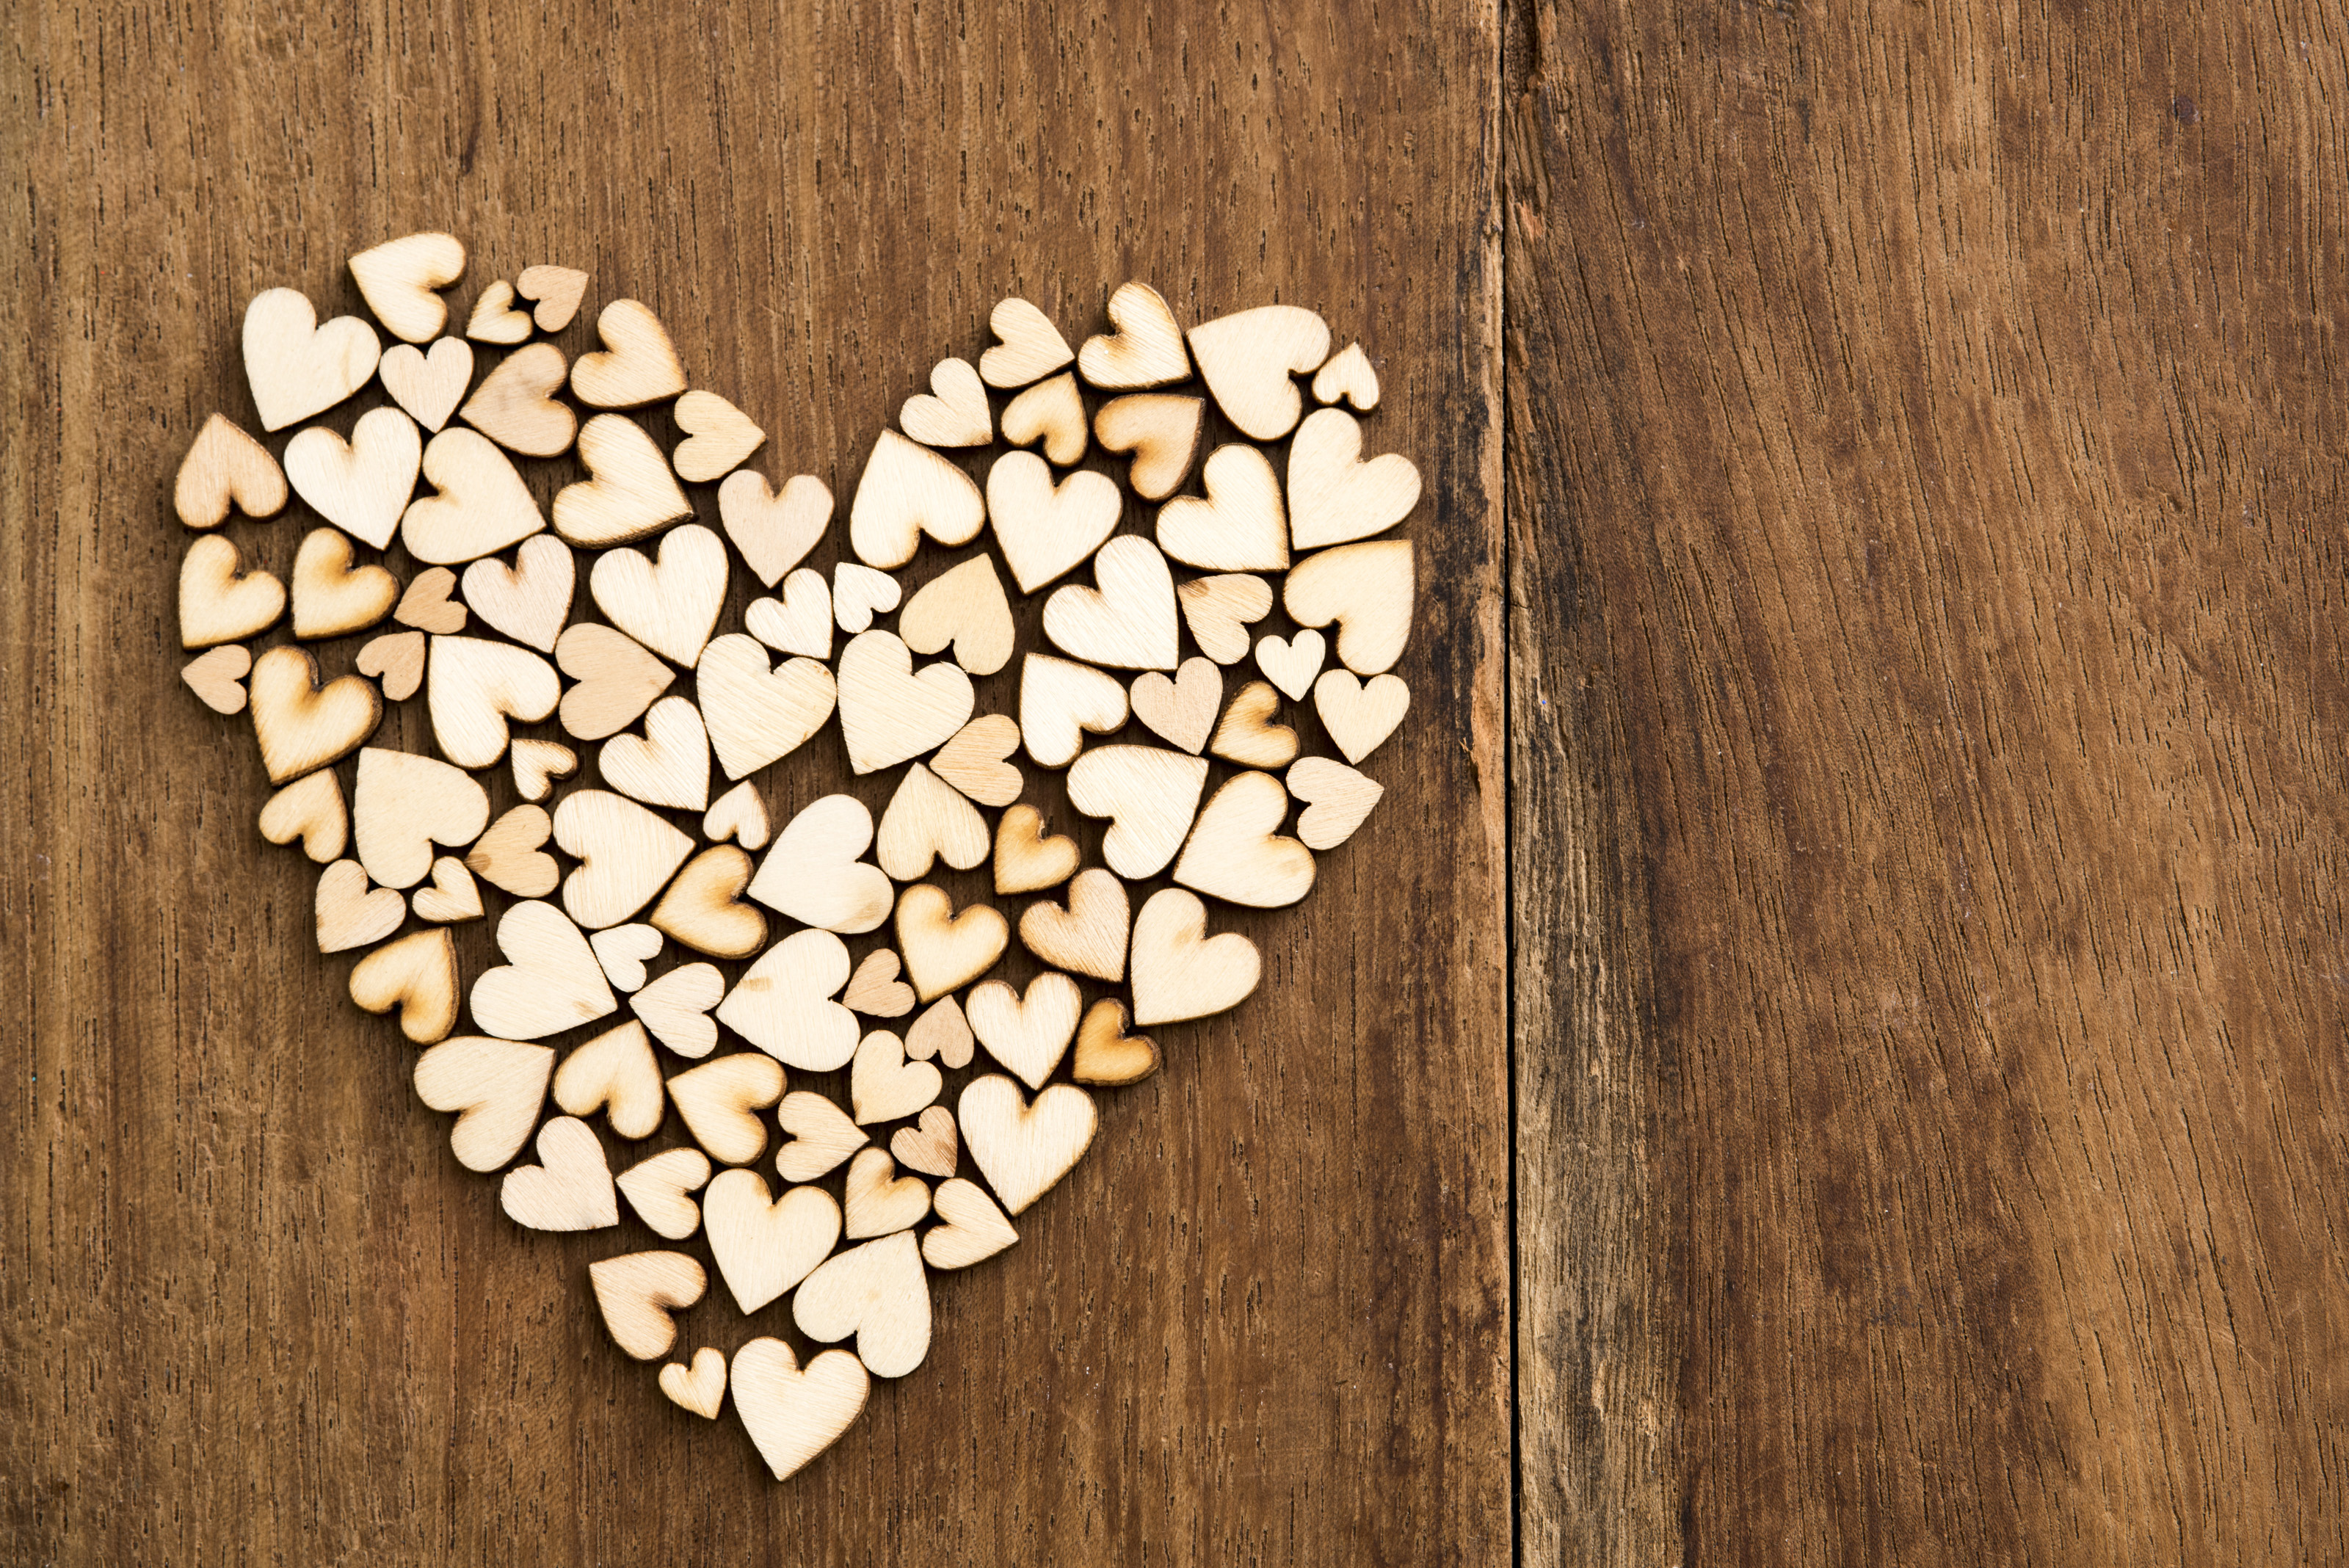 Free Stock Photo 13513 Small Wooden Hearts Freeimageslive